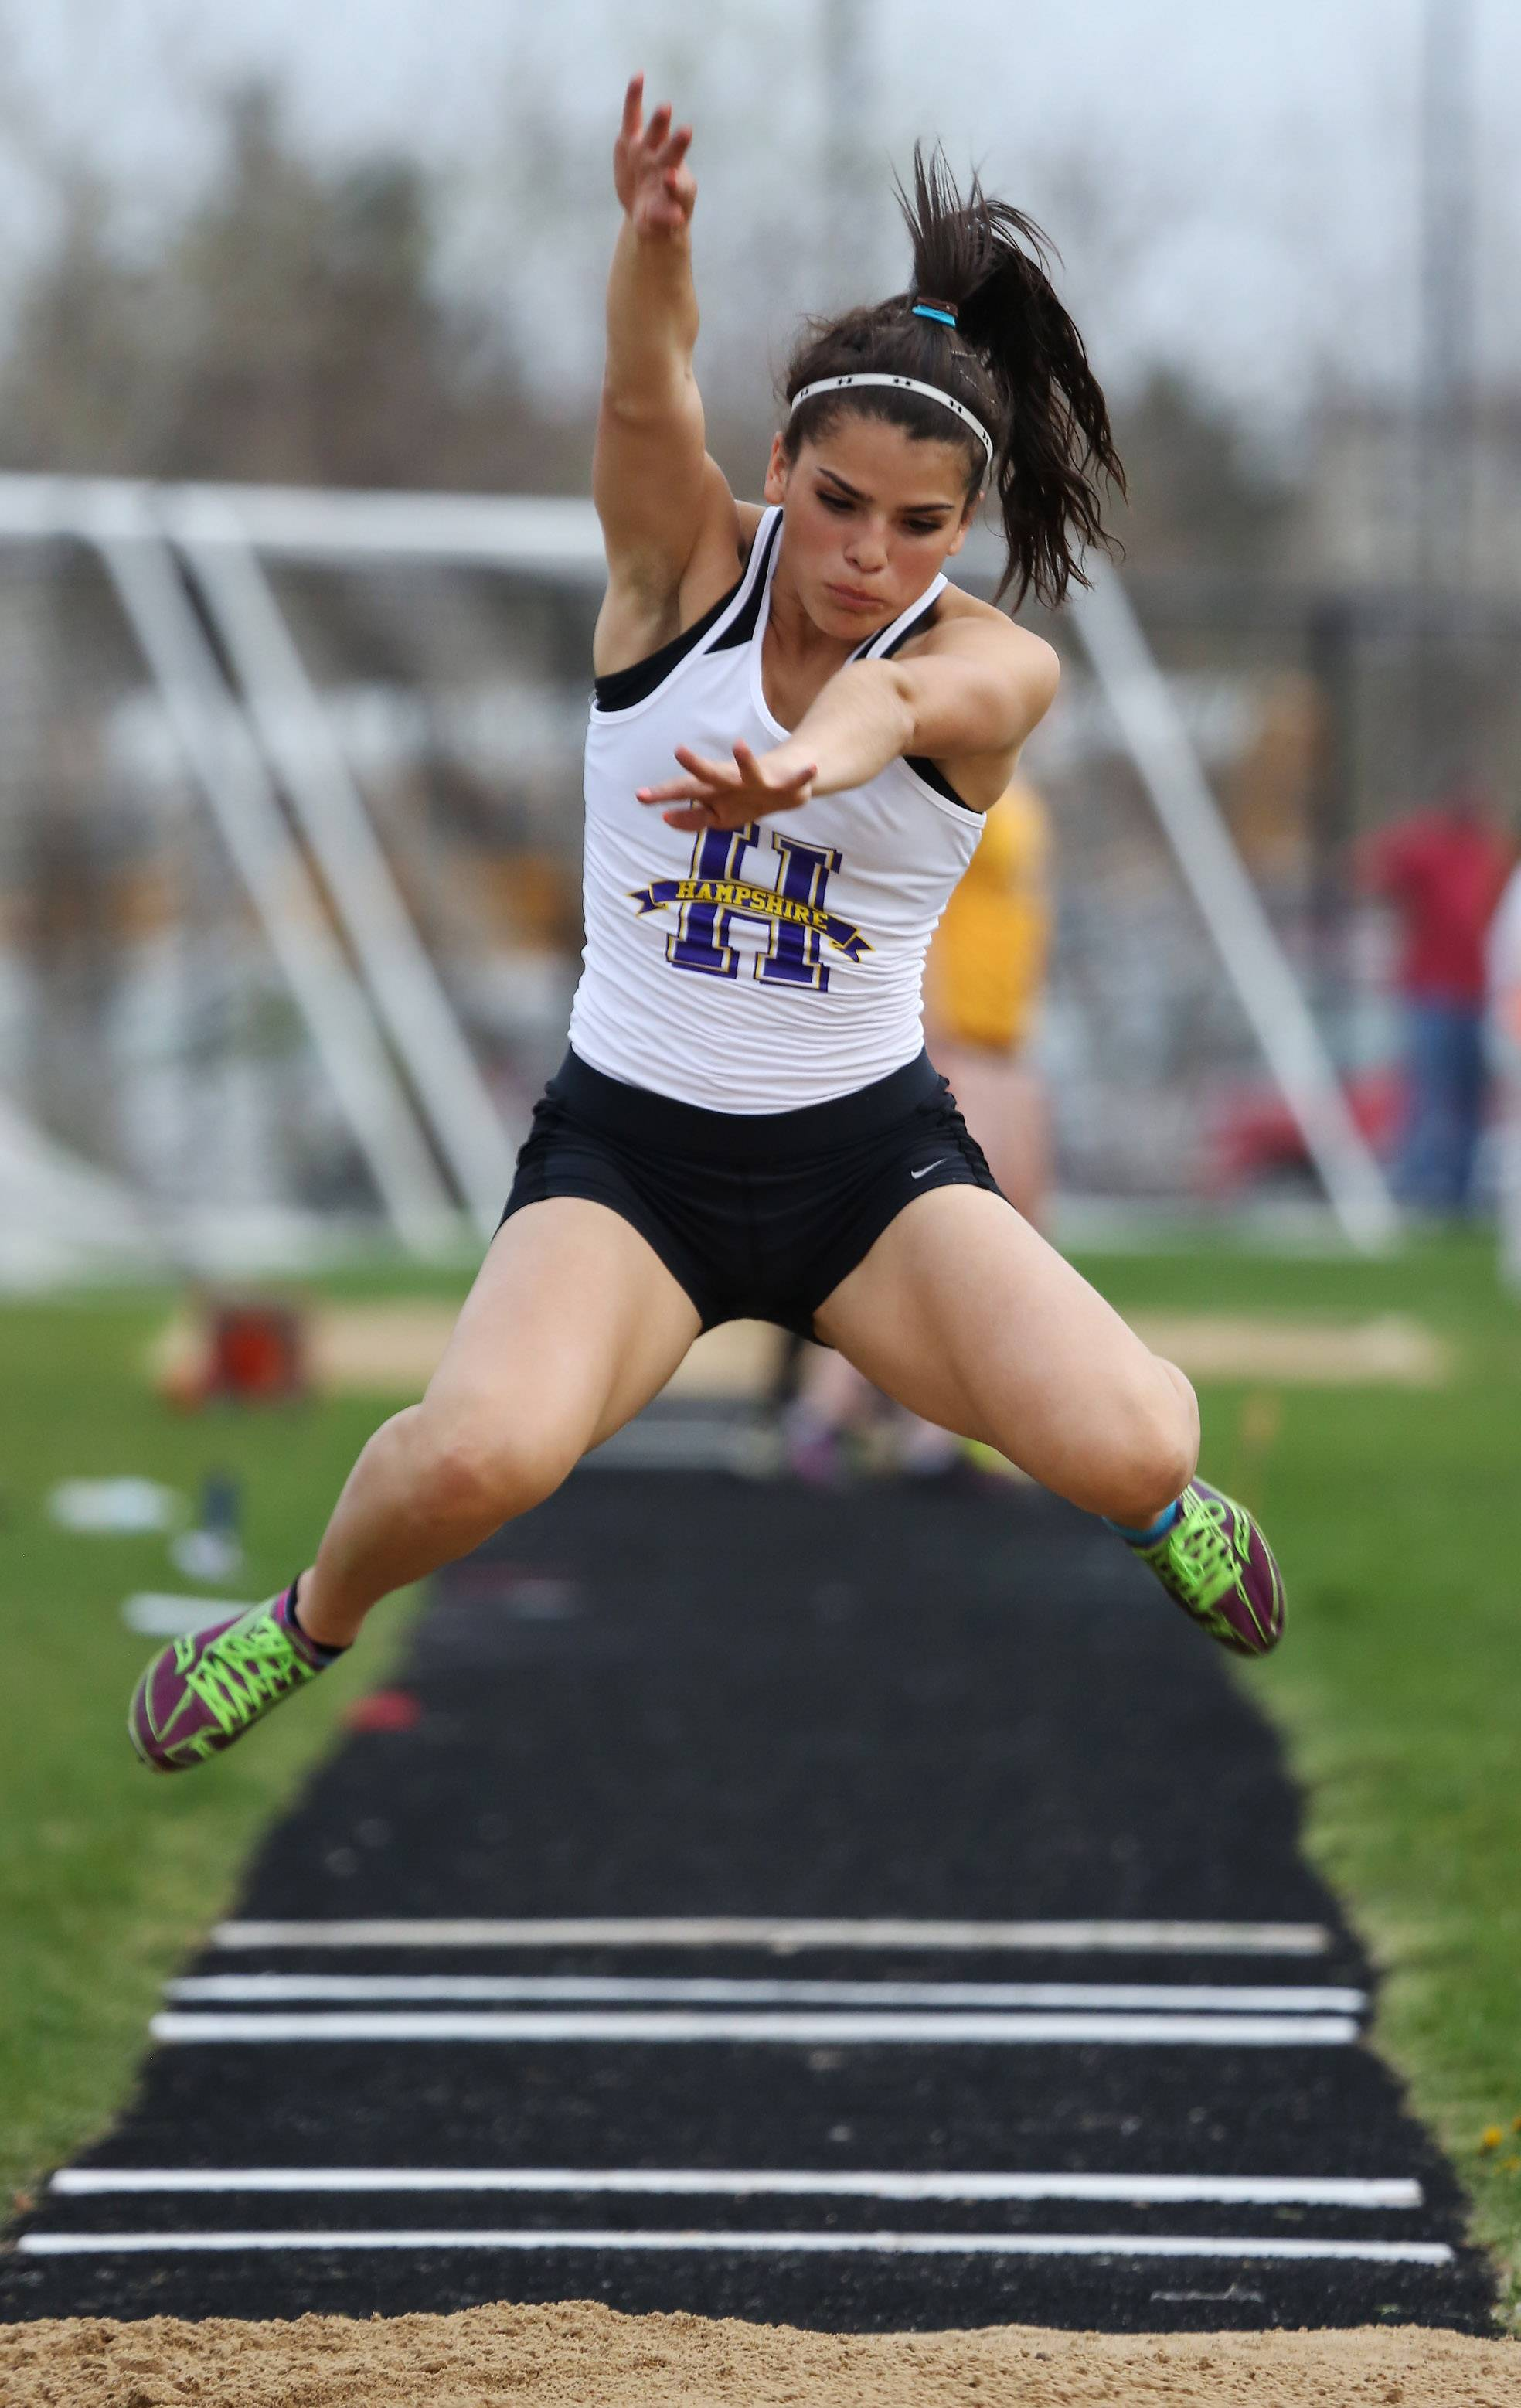 Elizabeth Pagan of Hampshire competes in the long jump during the Fox Valley Conference girls varsity track meet Thursday at Grayslake North High School.